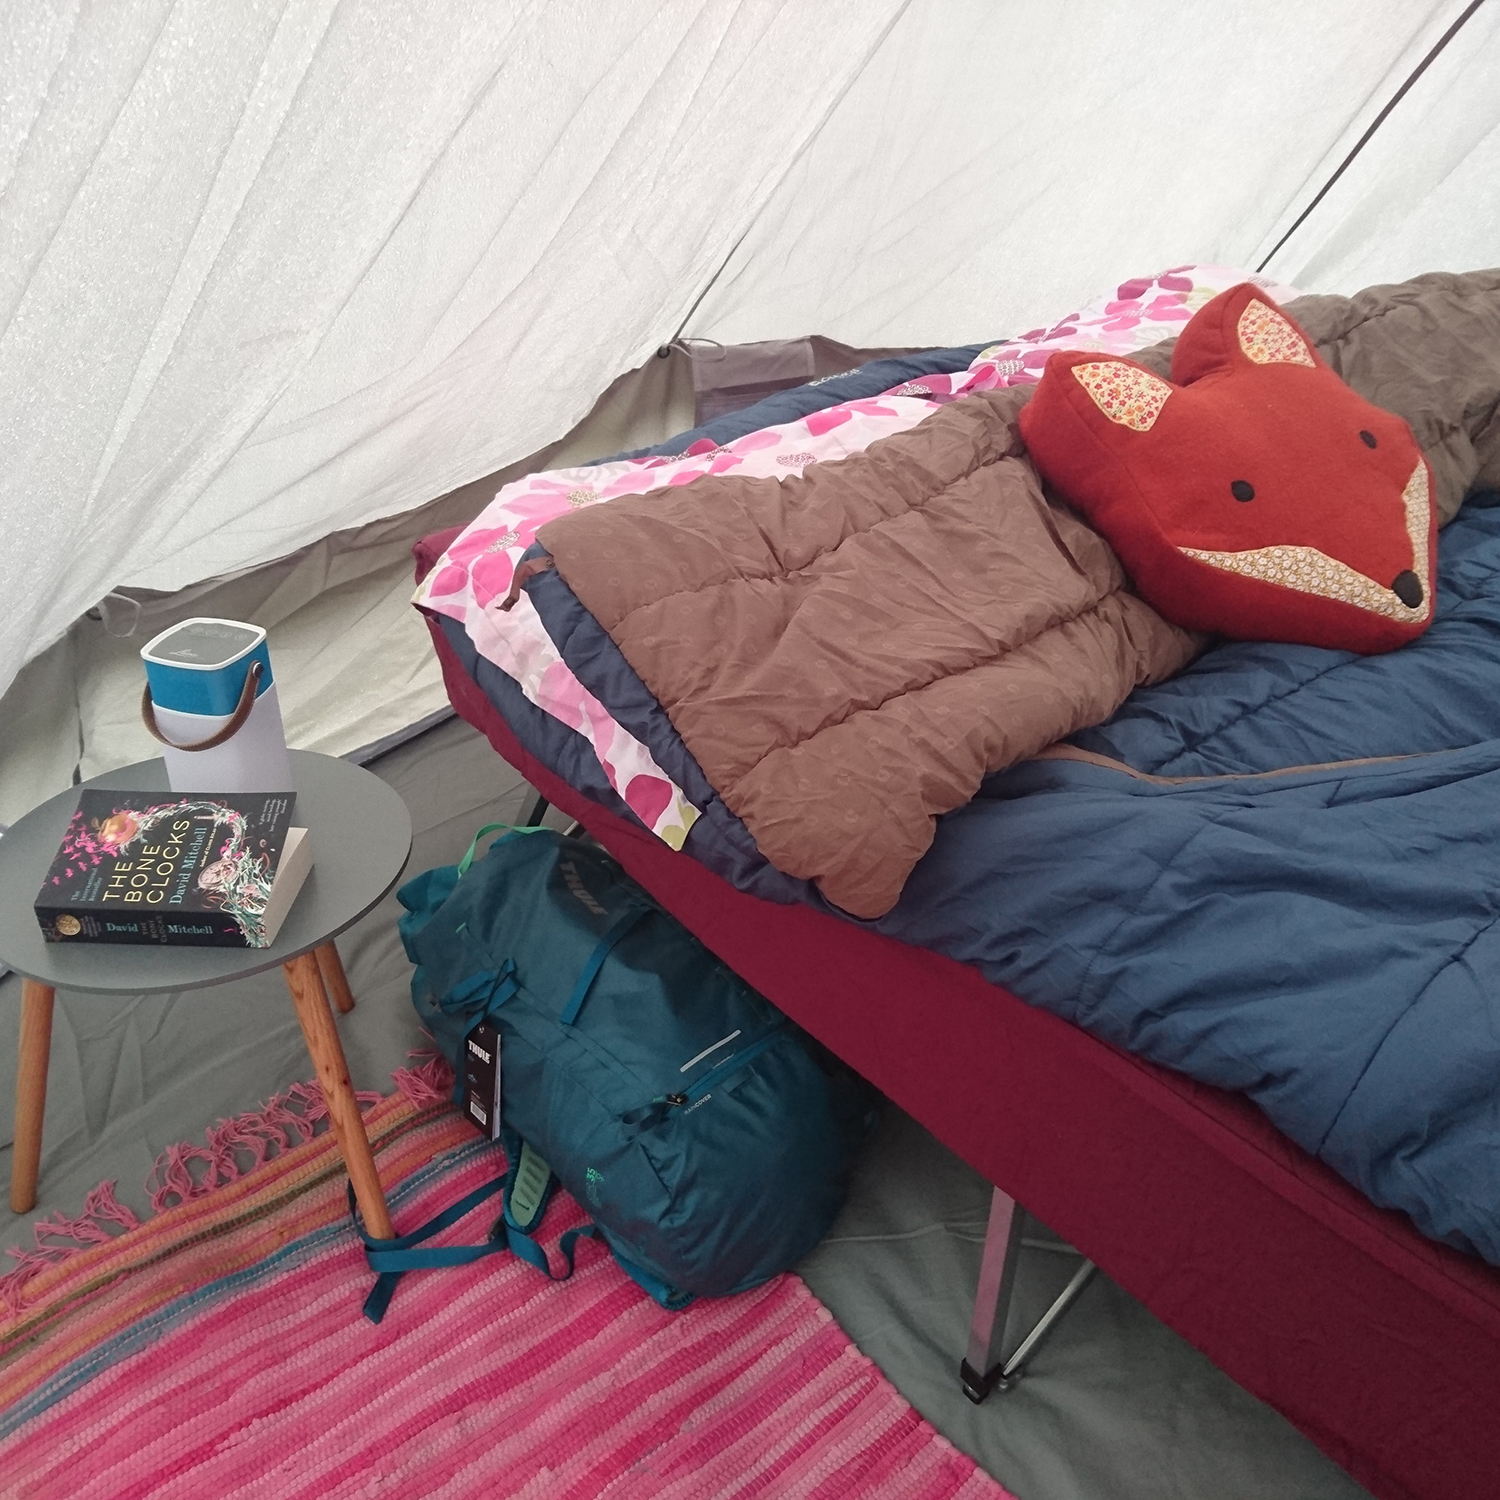 King Size Air Bed Camping Your Complete Guide To Camp Beds Sleeping In Comfort Under Canvas